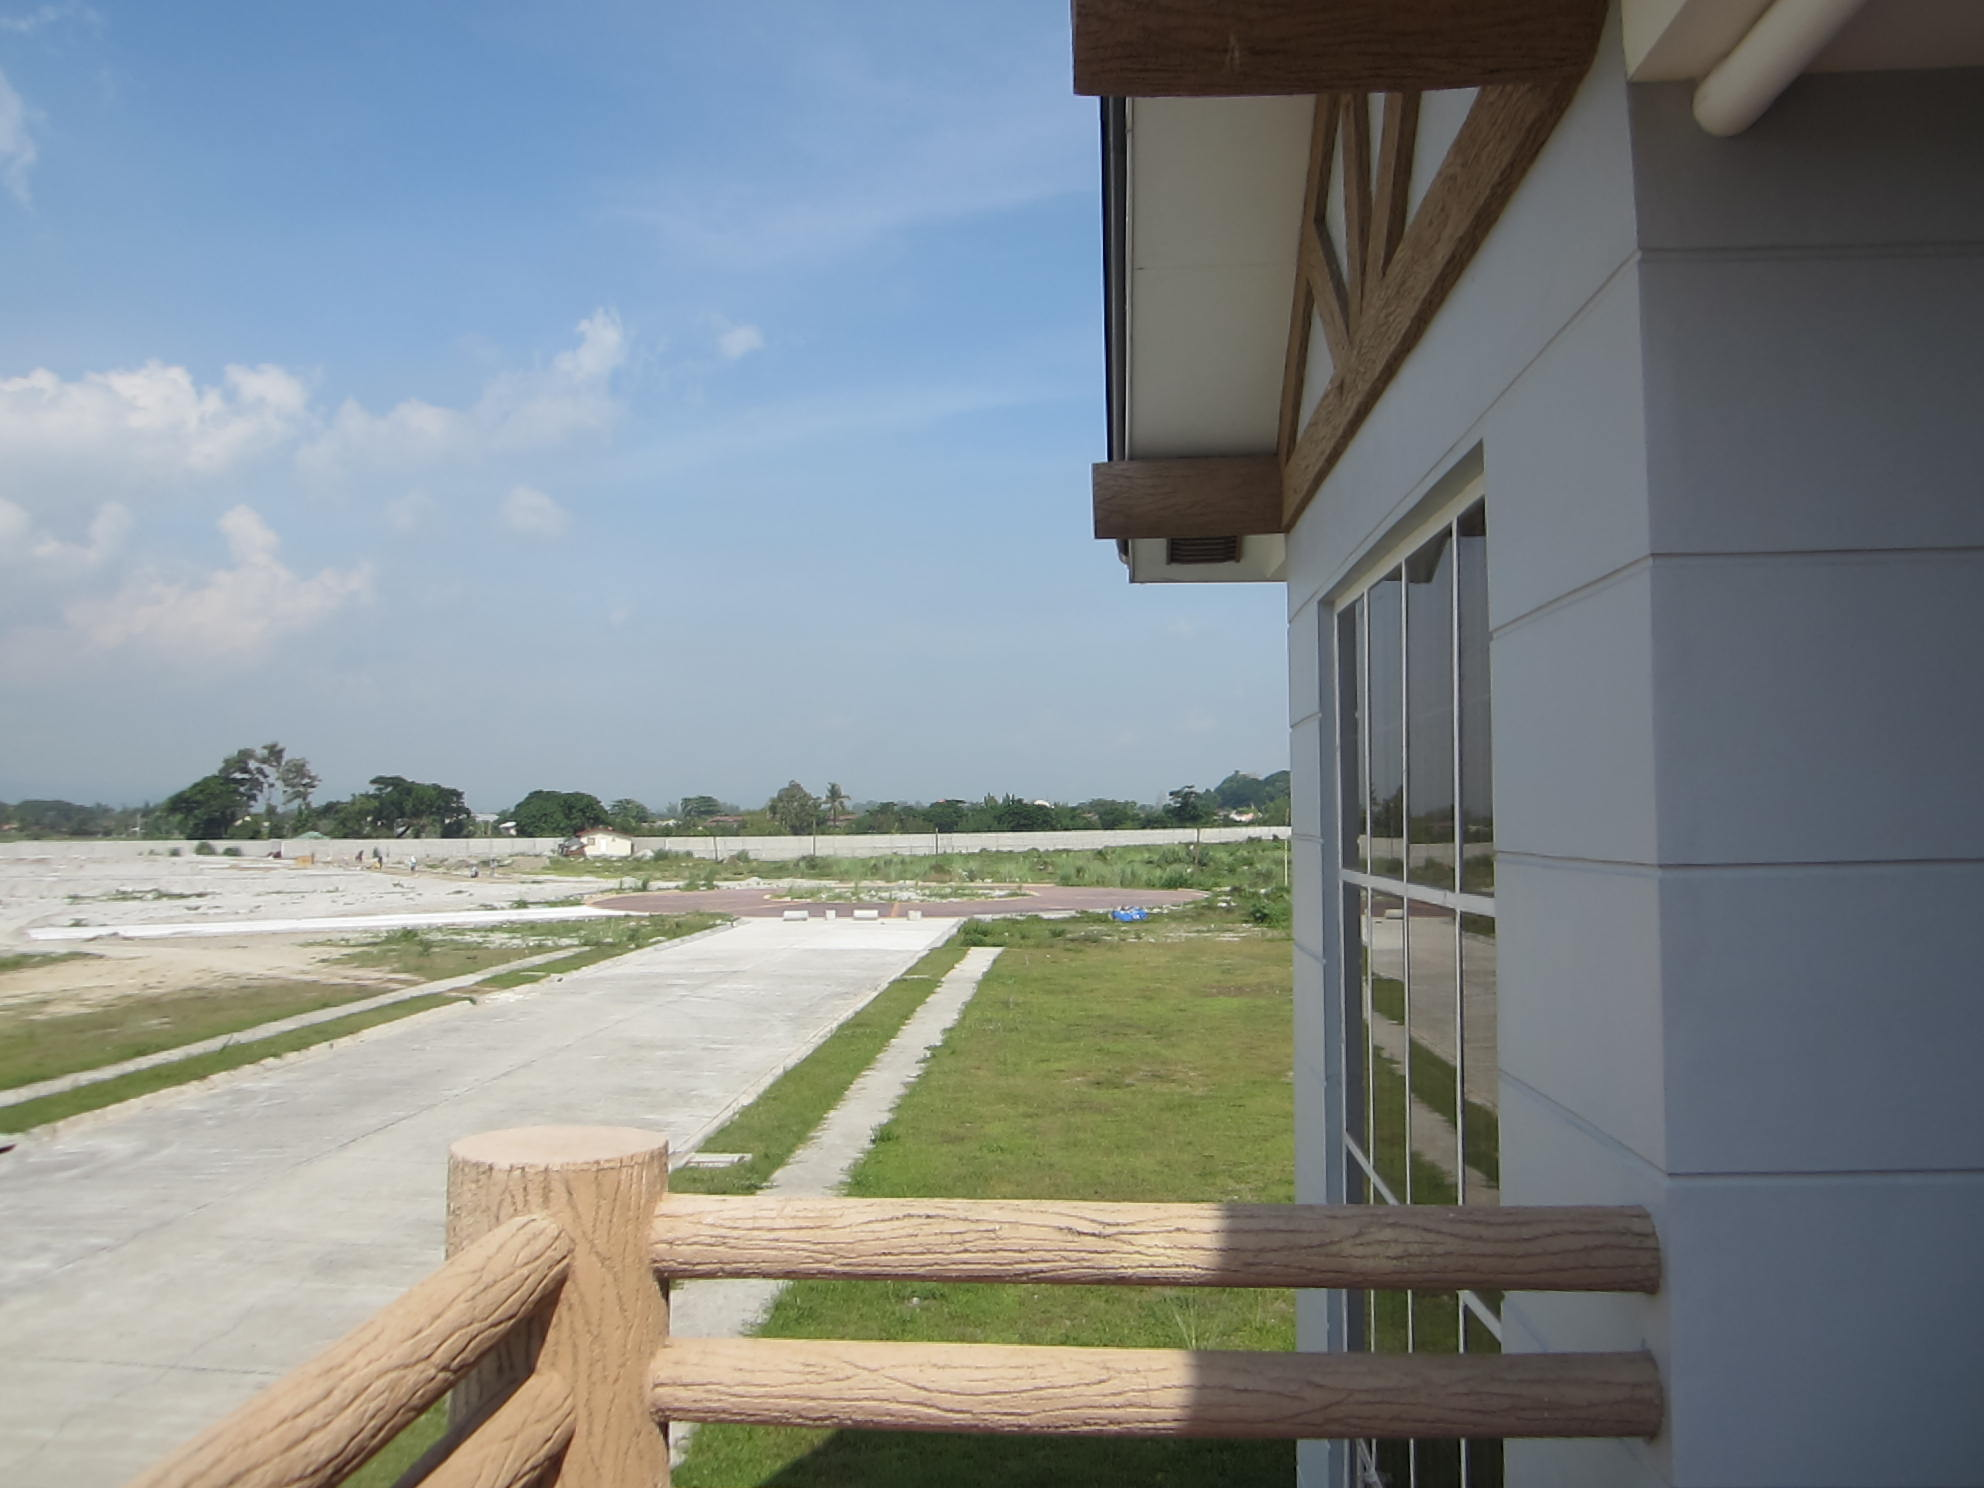 FOR SALE: Lot / Land / Farm Pampanga 3